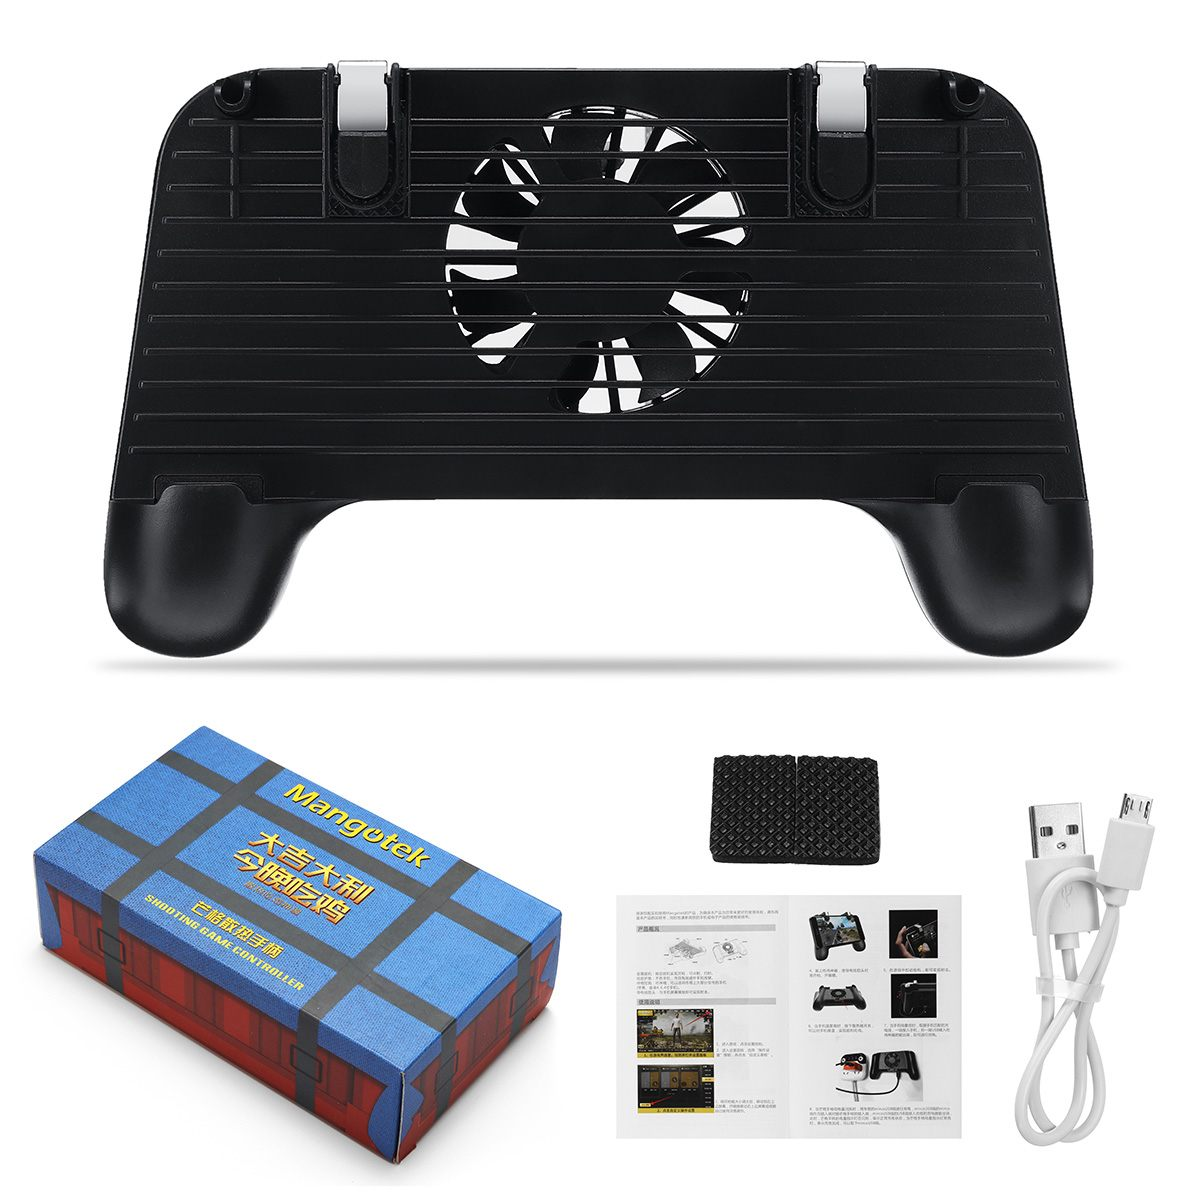 4 In 1 Cooling Fan Radiator Charging Handle Gamepad Joystick Holder Gaming Controller Power Bank for Mobile Phone For PUBG